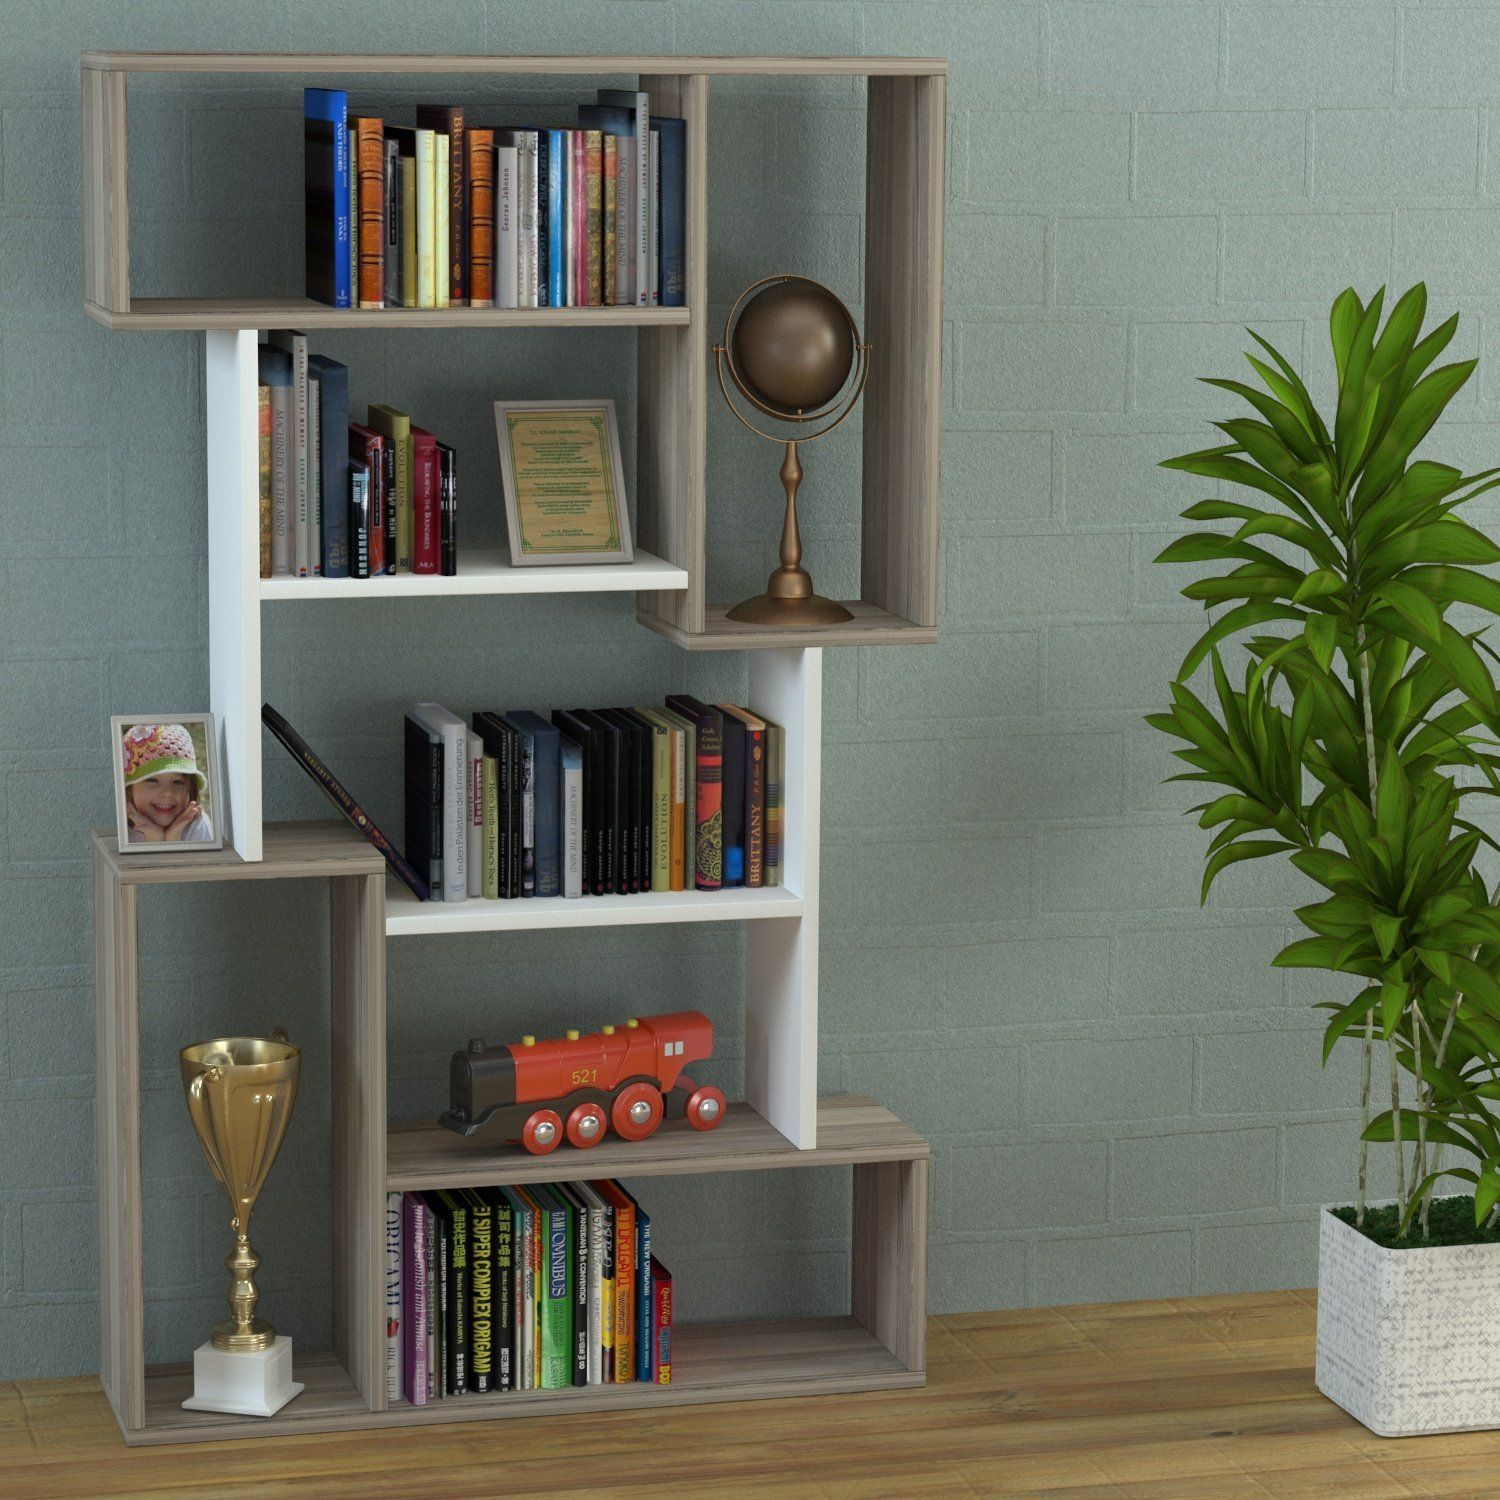 Ultimate White Bookcase Shelving Unit Room Divider Office Shelf